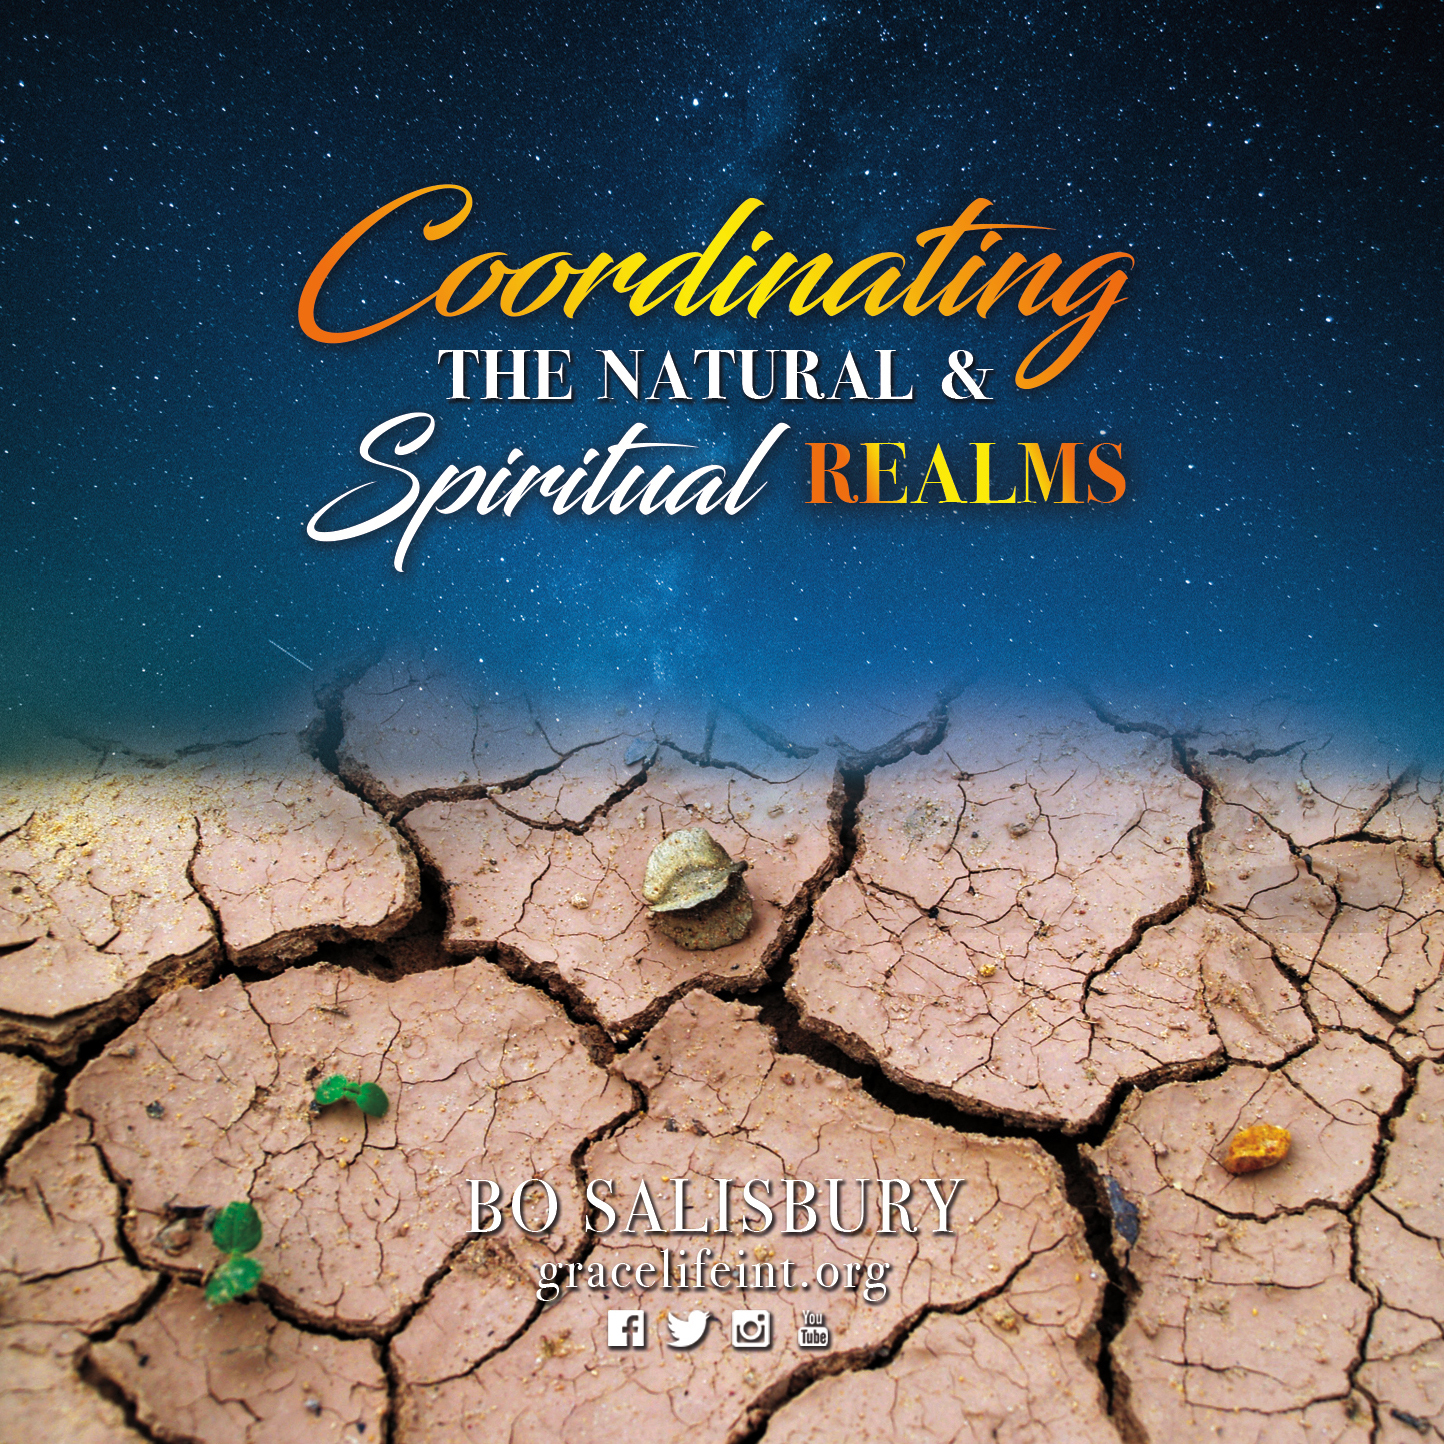 Coordinating the Natural and Spiritual Realms 4823